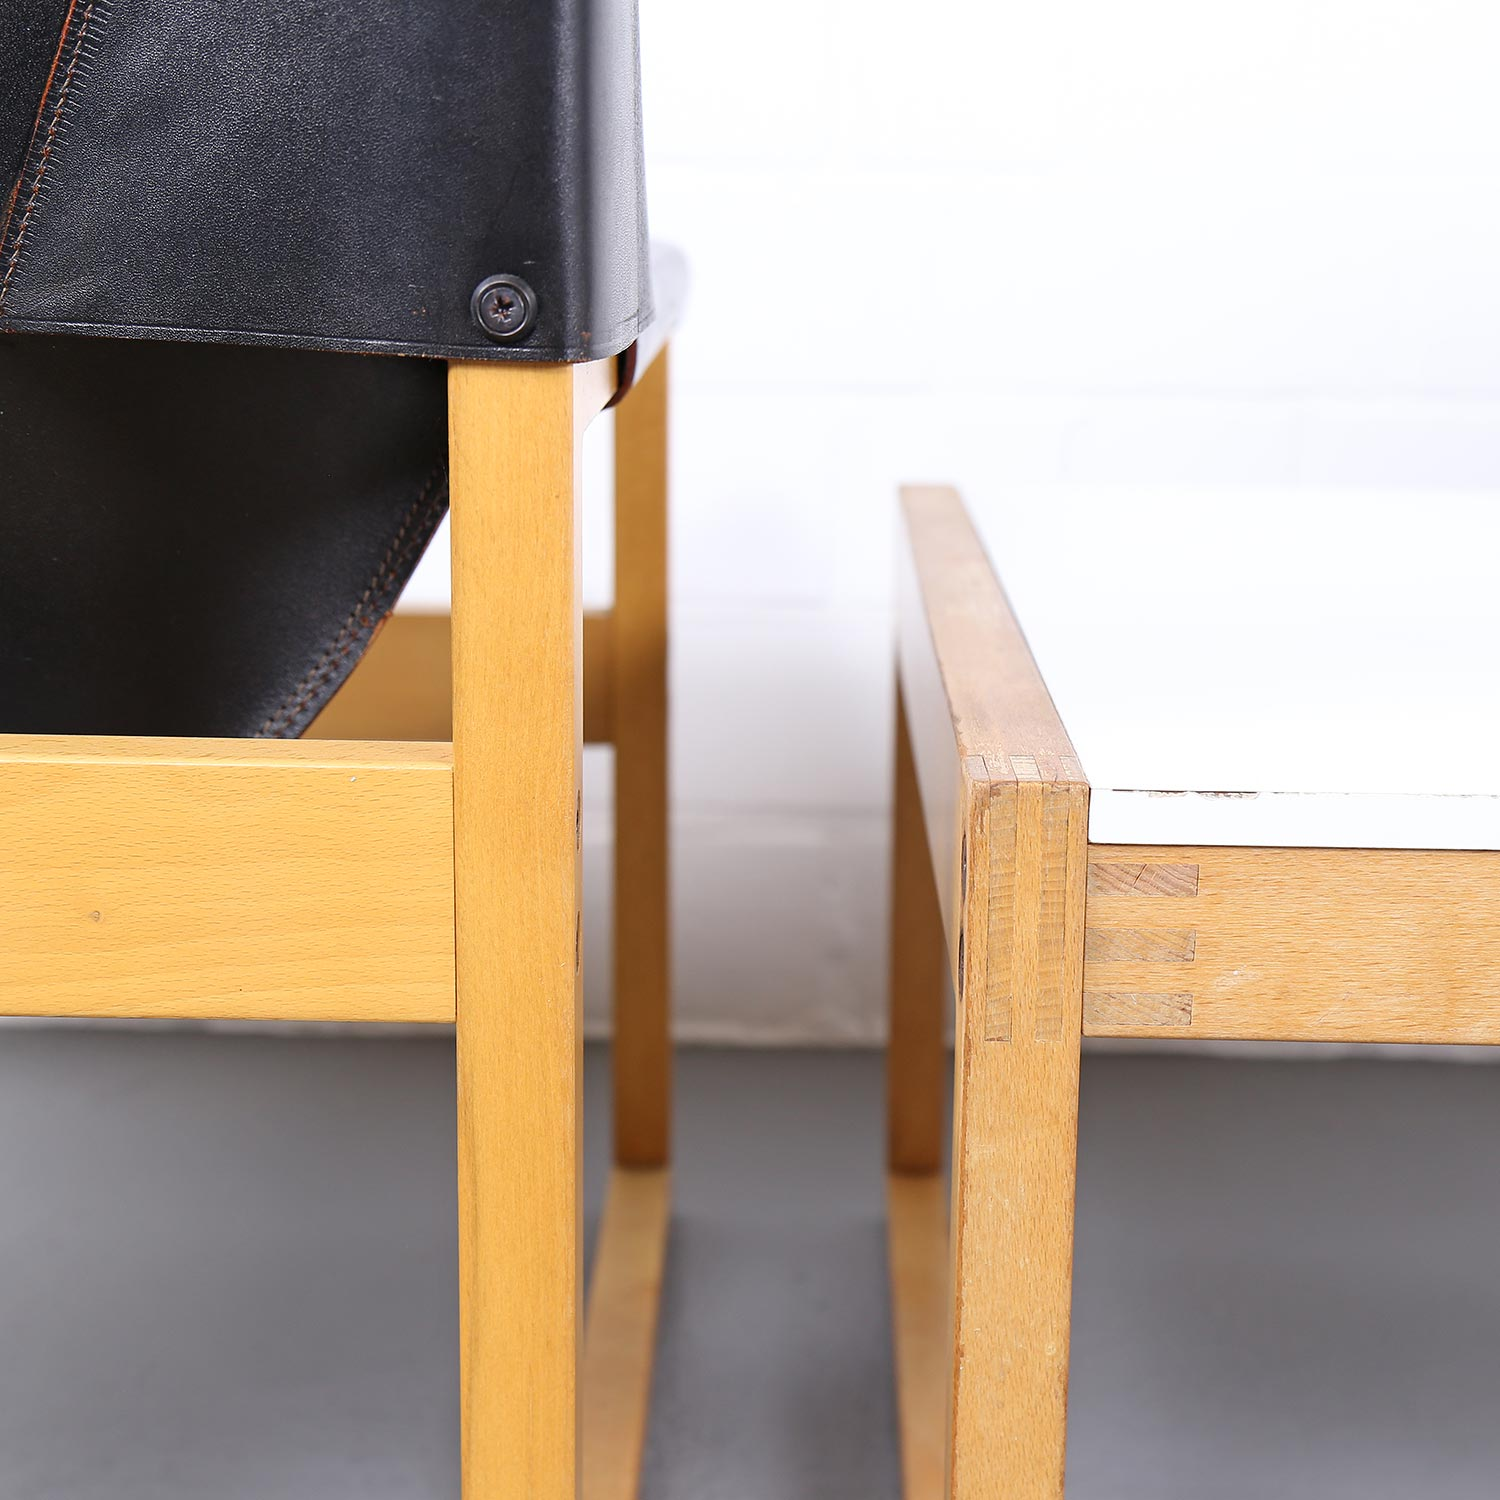 Architekt Göttingen Architect Armchairs Sidetable Architekt Schell Goettingen